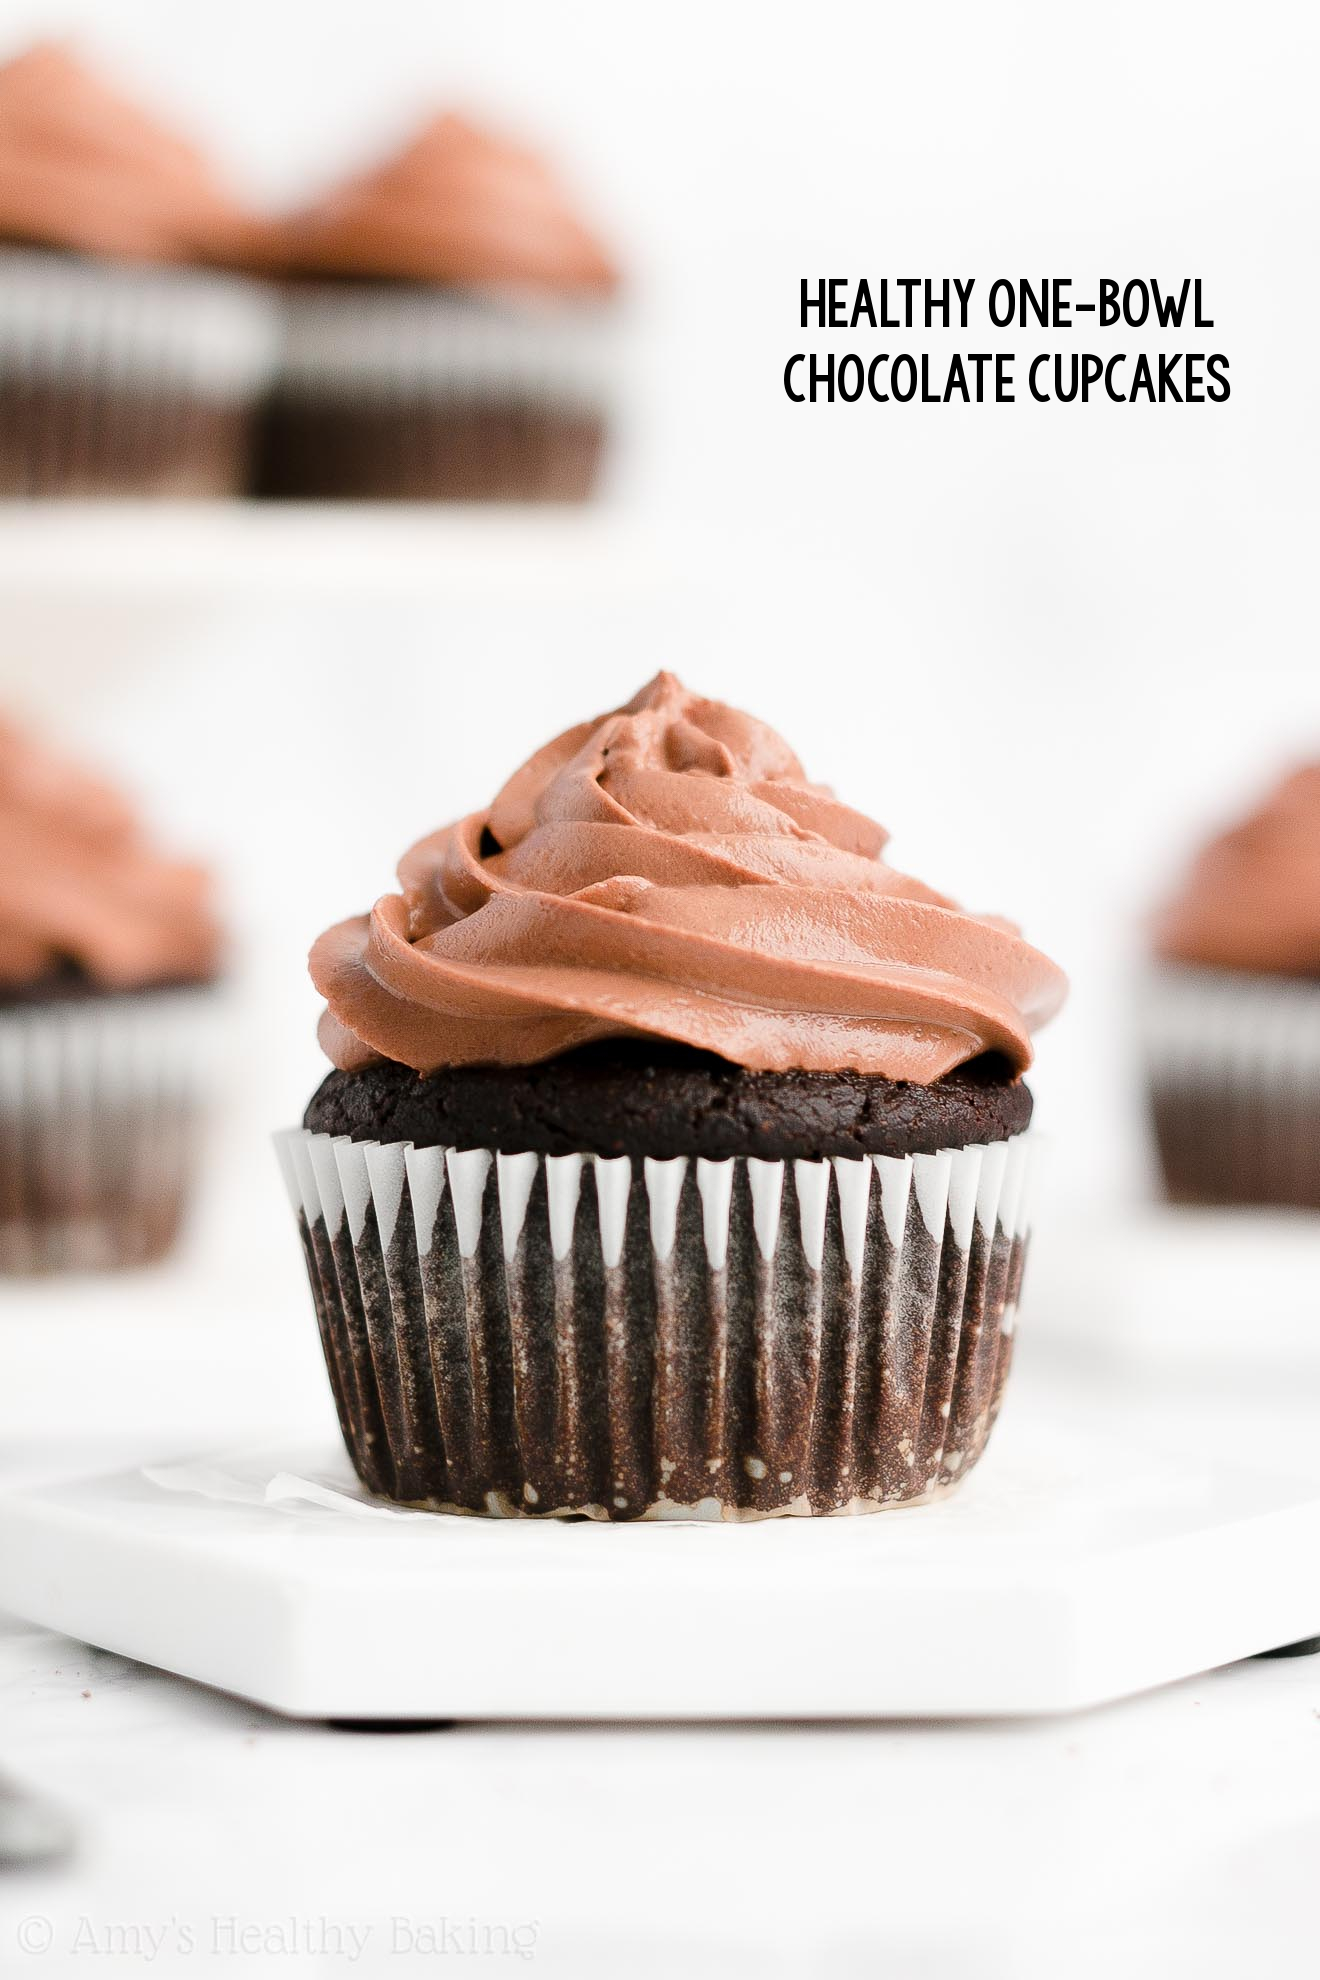 Best Easy Healthy Homemade Gluten Free Moist One-Bowl Chocolate Cupcakes